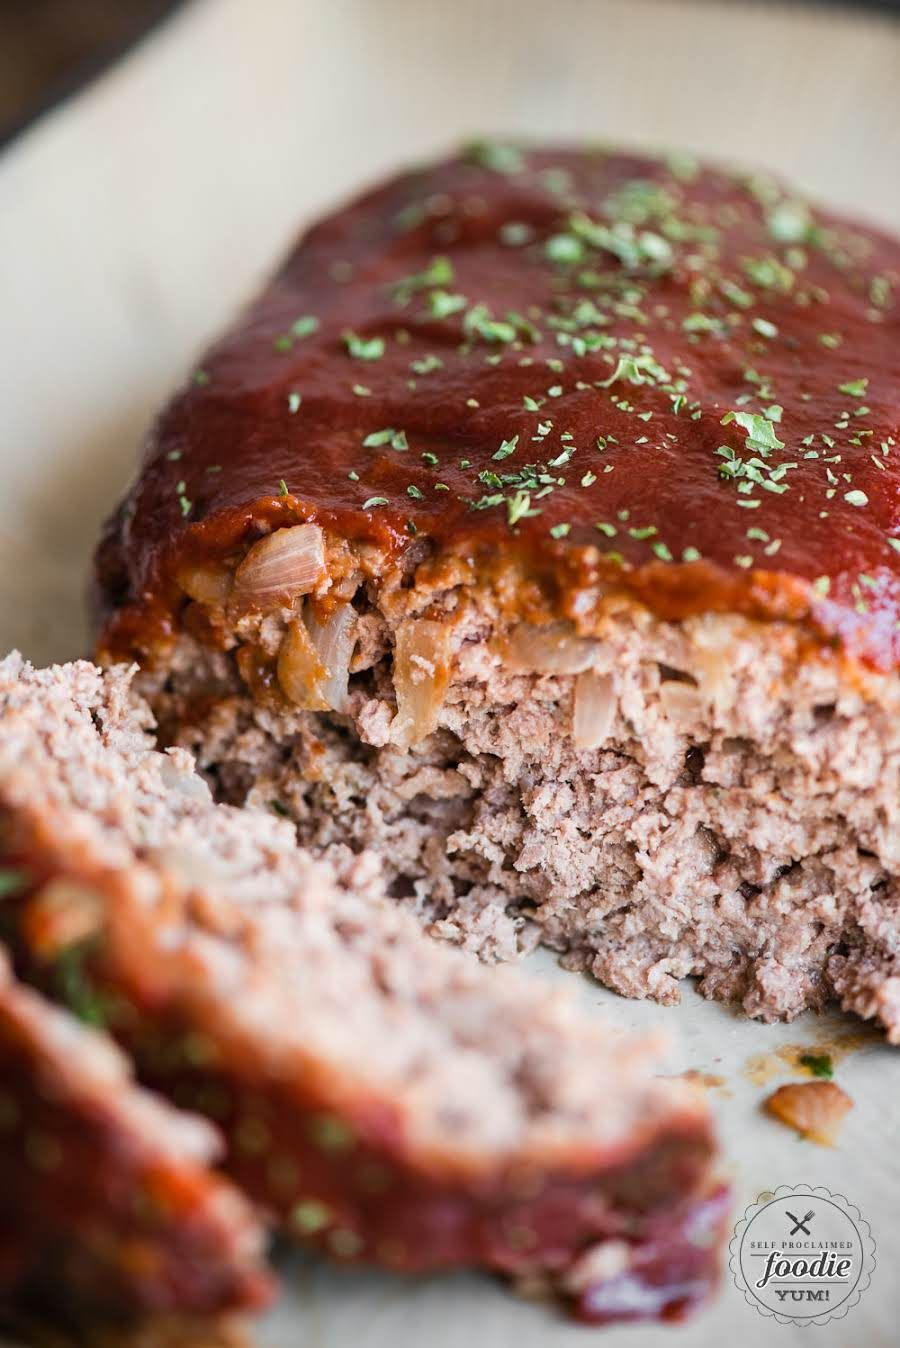 Granny S Classic Meatloaf Recipe In 2020 With Images Classic Meatloaf Recipe Homemade Meatloaf Best Meatloaf